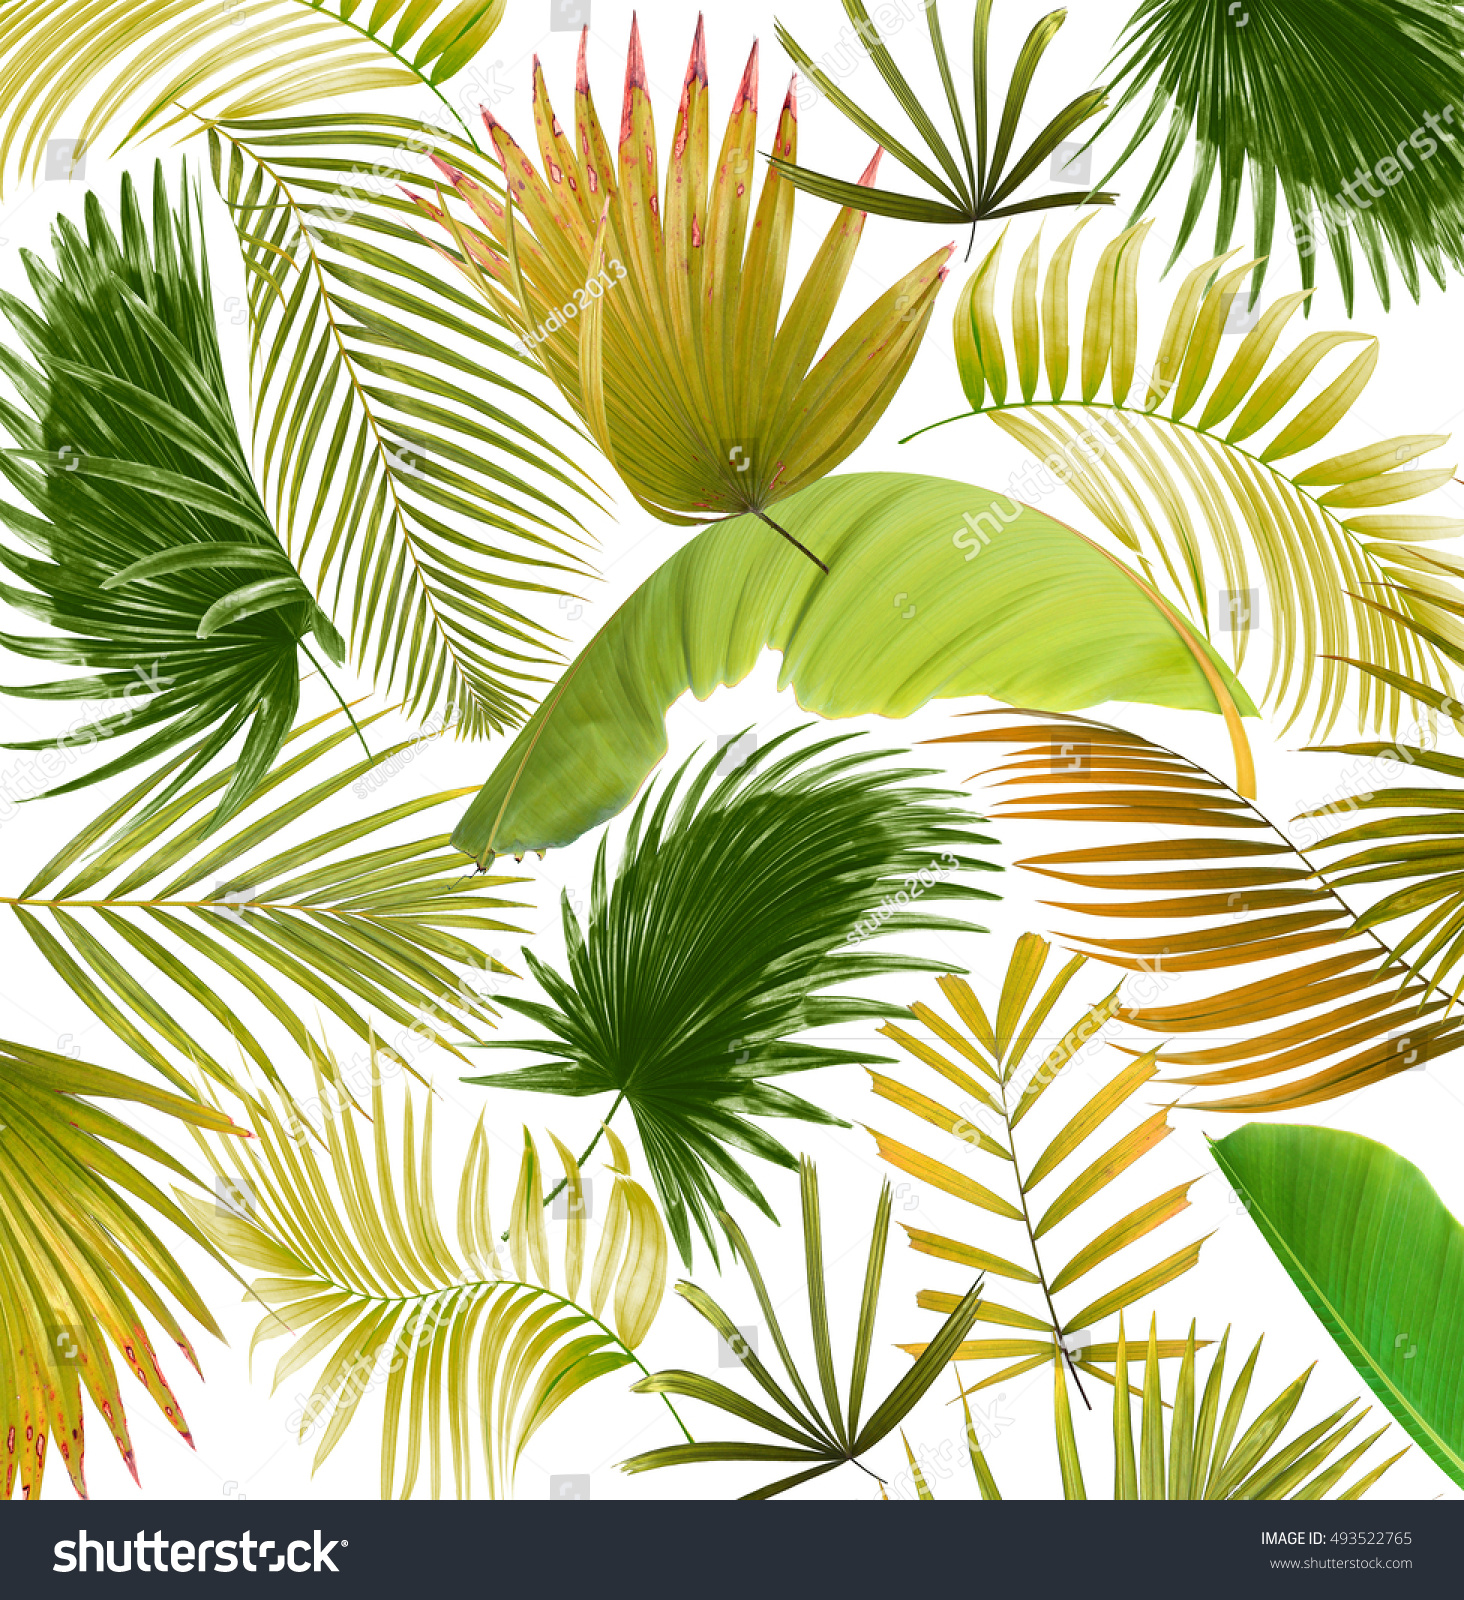 leaves of palm tree background | EZ Canvas